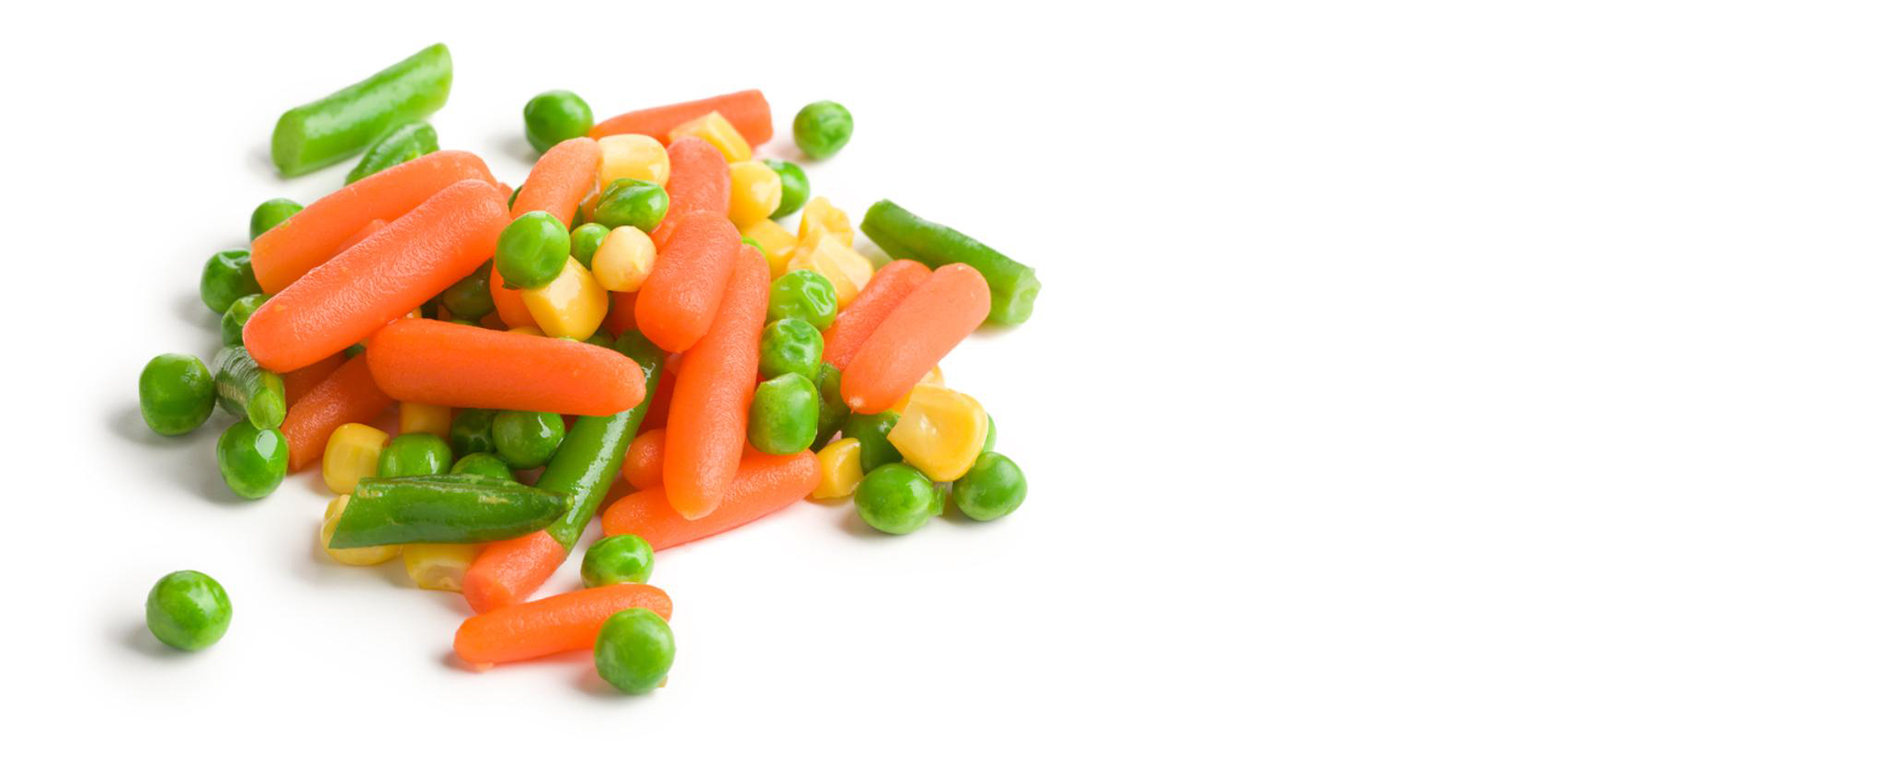 IQF Mixed vegetables image